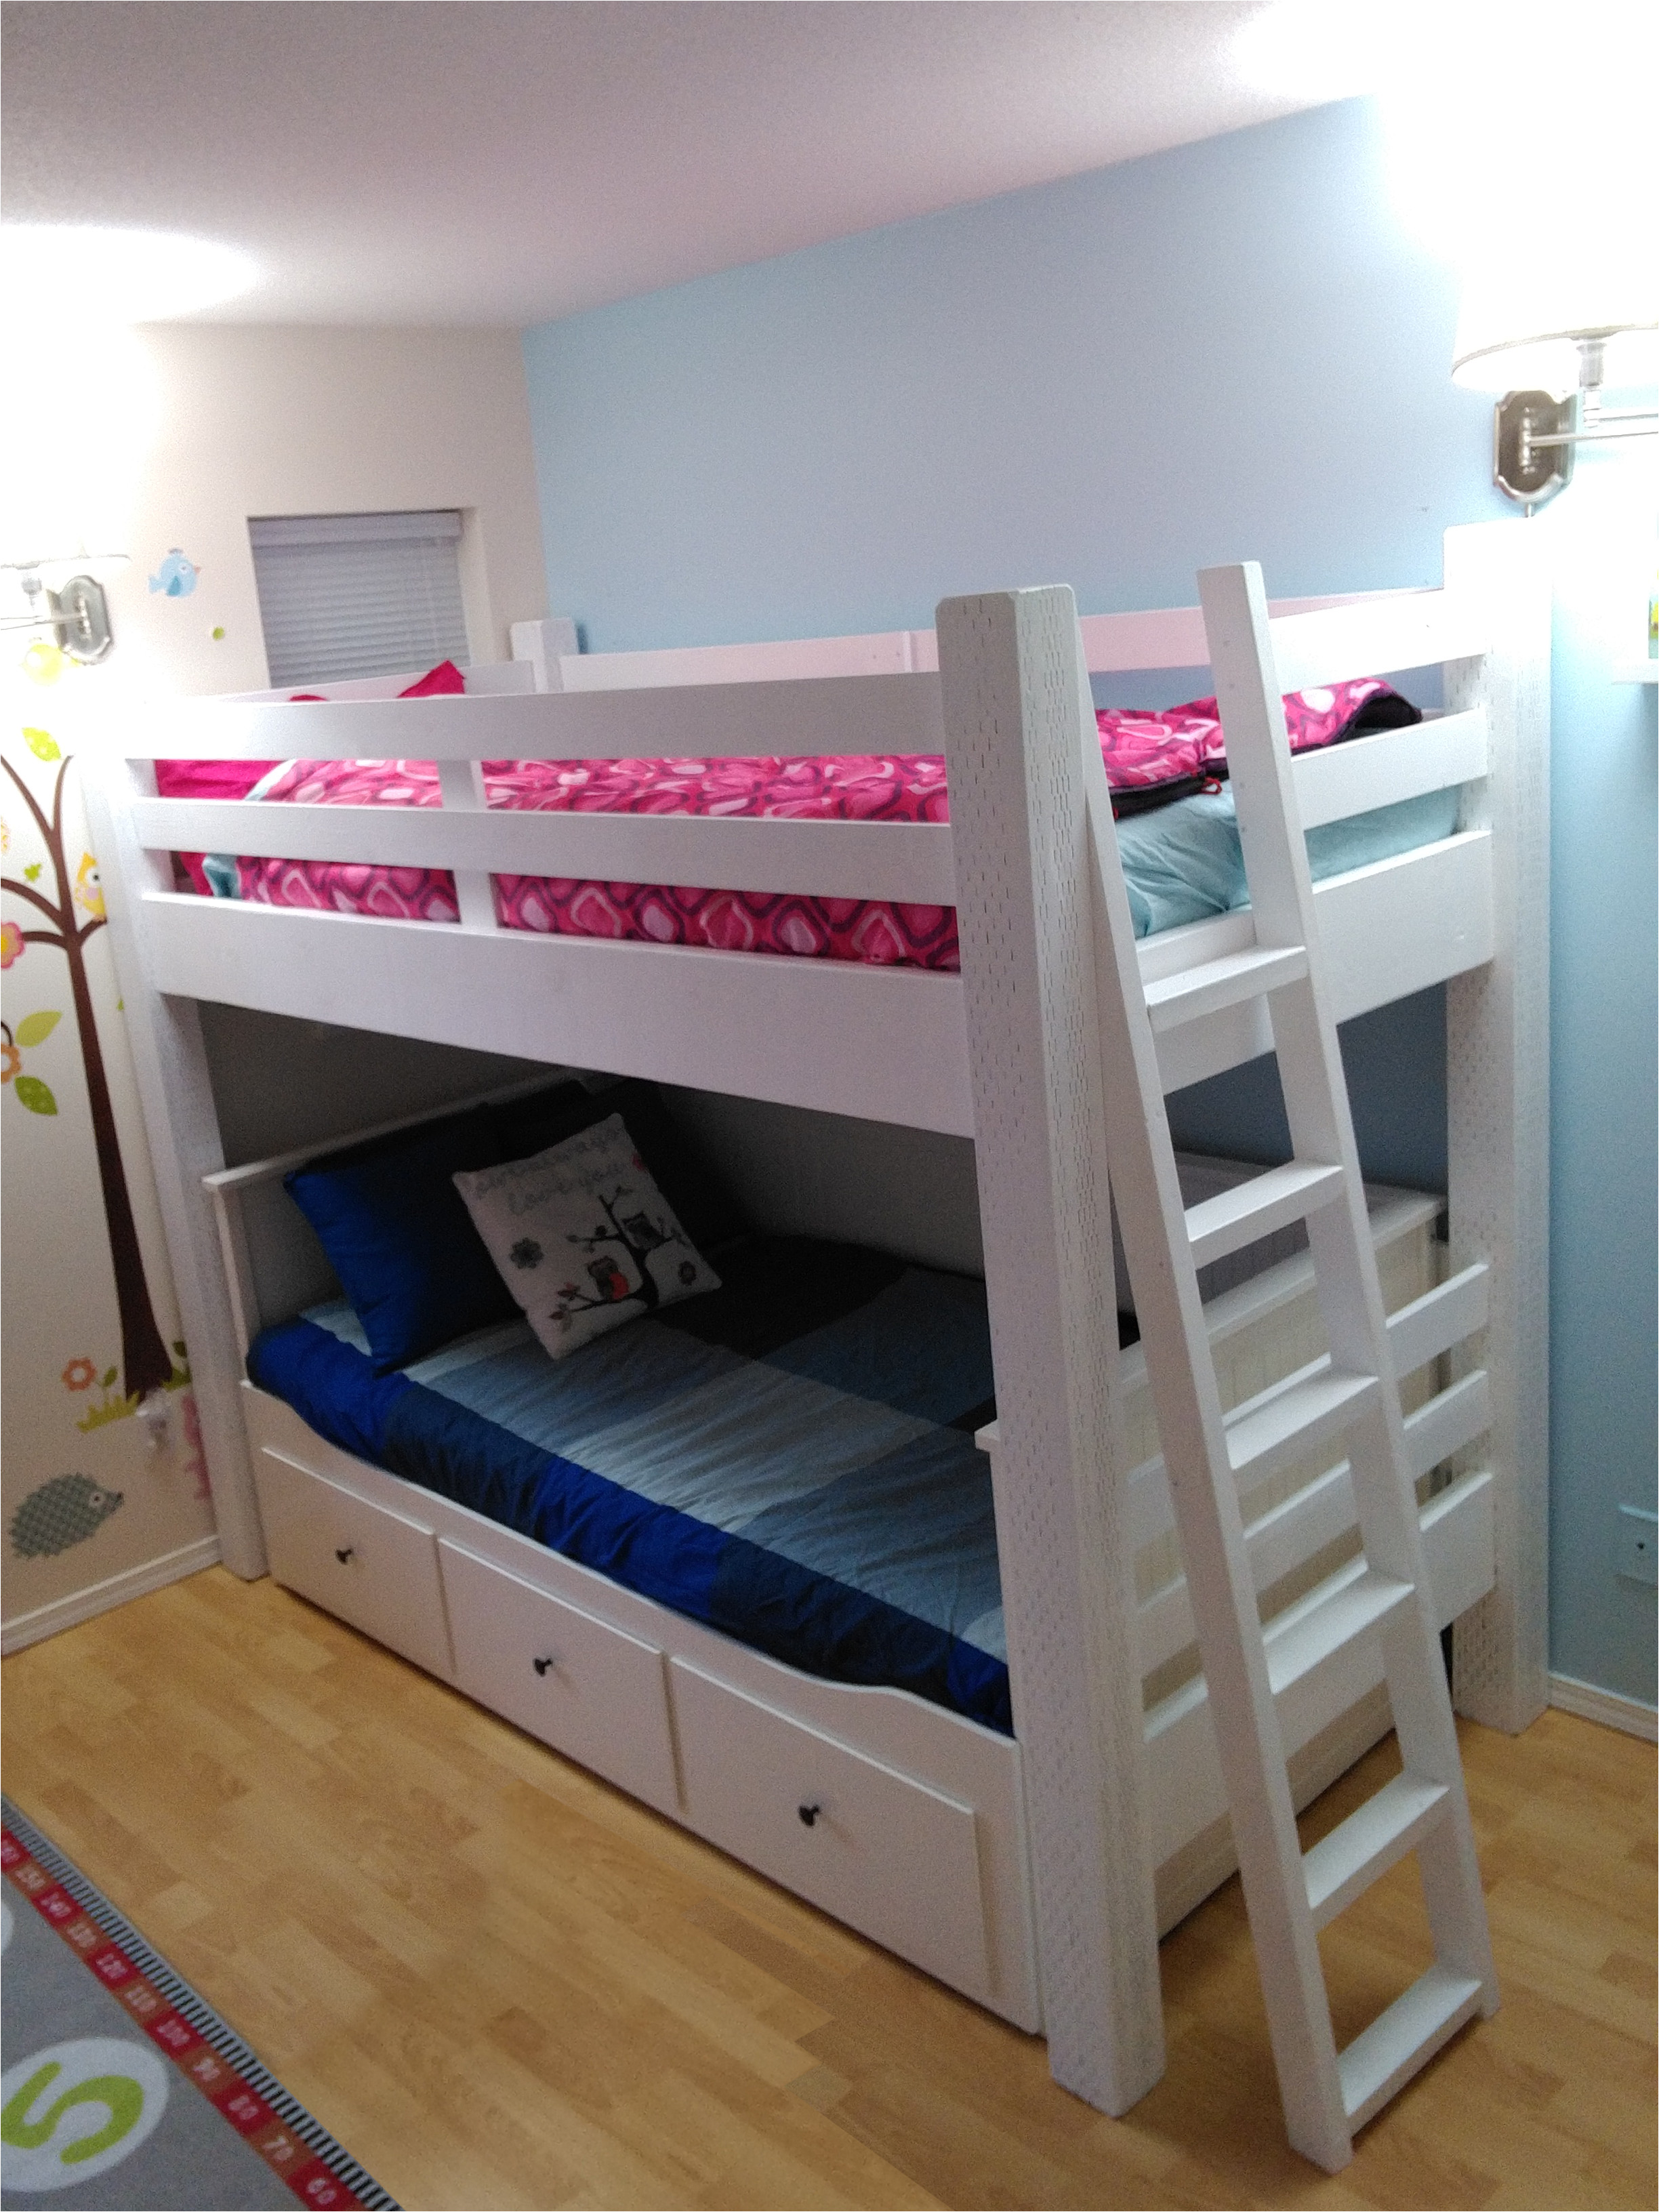 Ikea Hemnes Day Bed Bed Instructions Custom Loft Bed Built to Wrap the Ikea Hemnes Daybed Kids Room